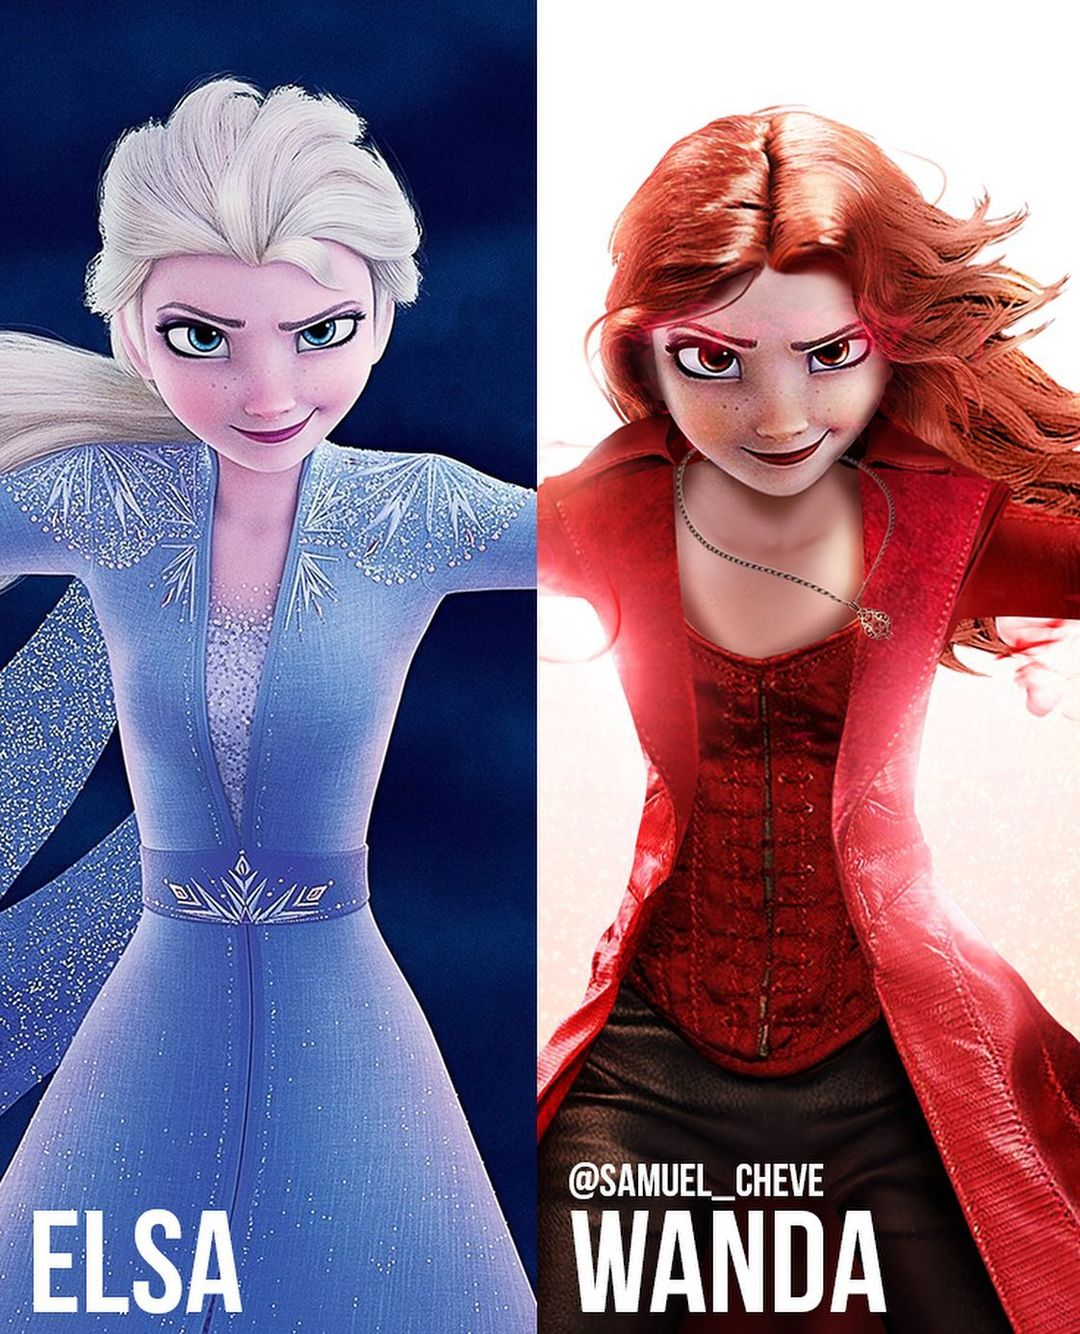 Disney characters reimagined as Marvel and DC icons 53